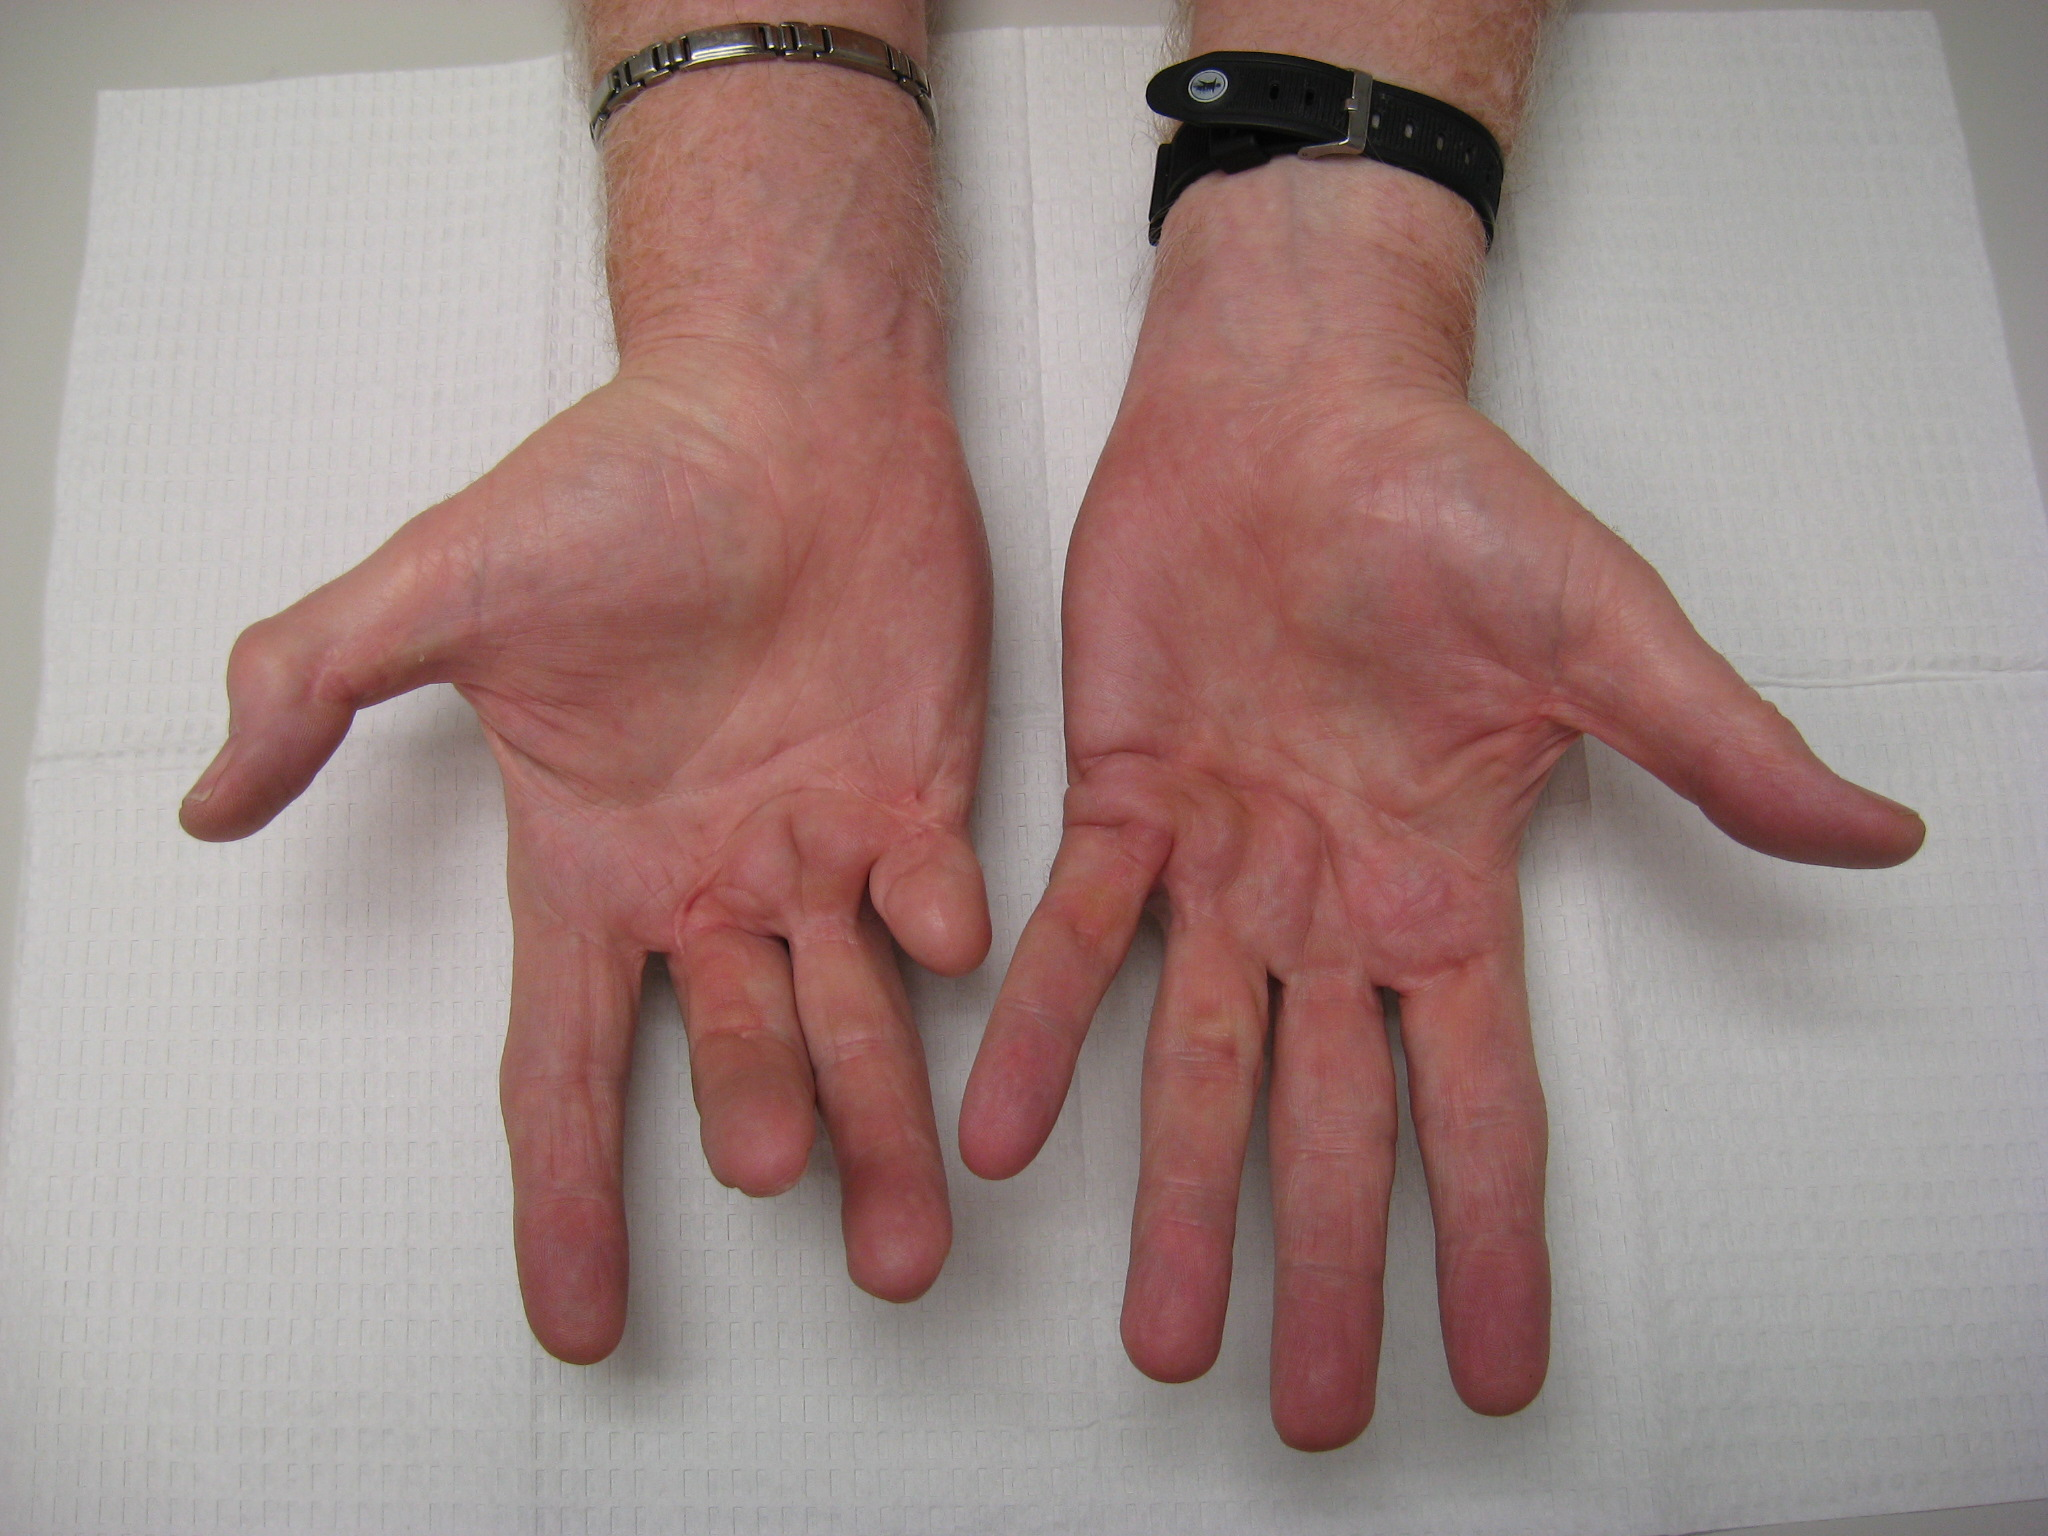 Gallery: Amputation for Dupuytren Contracture | Dupuytren